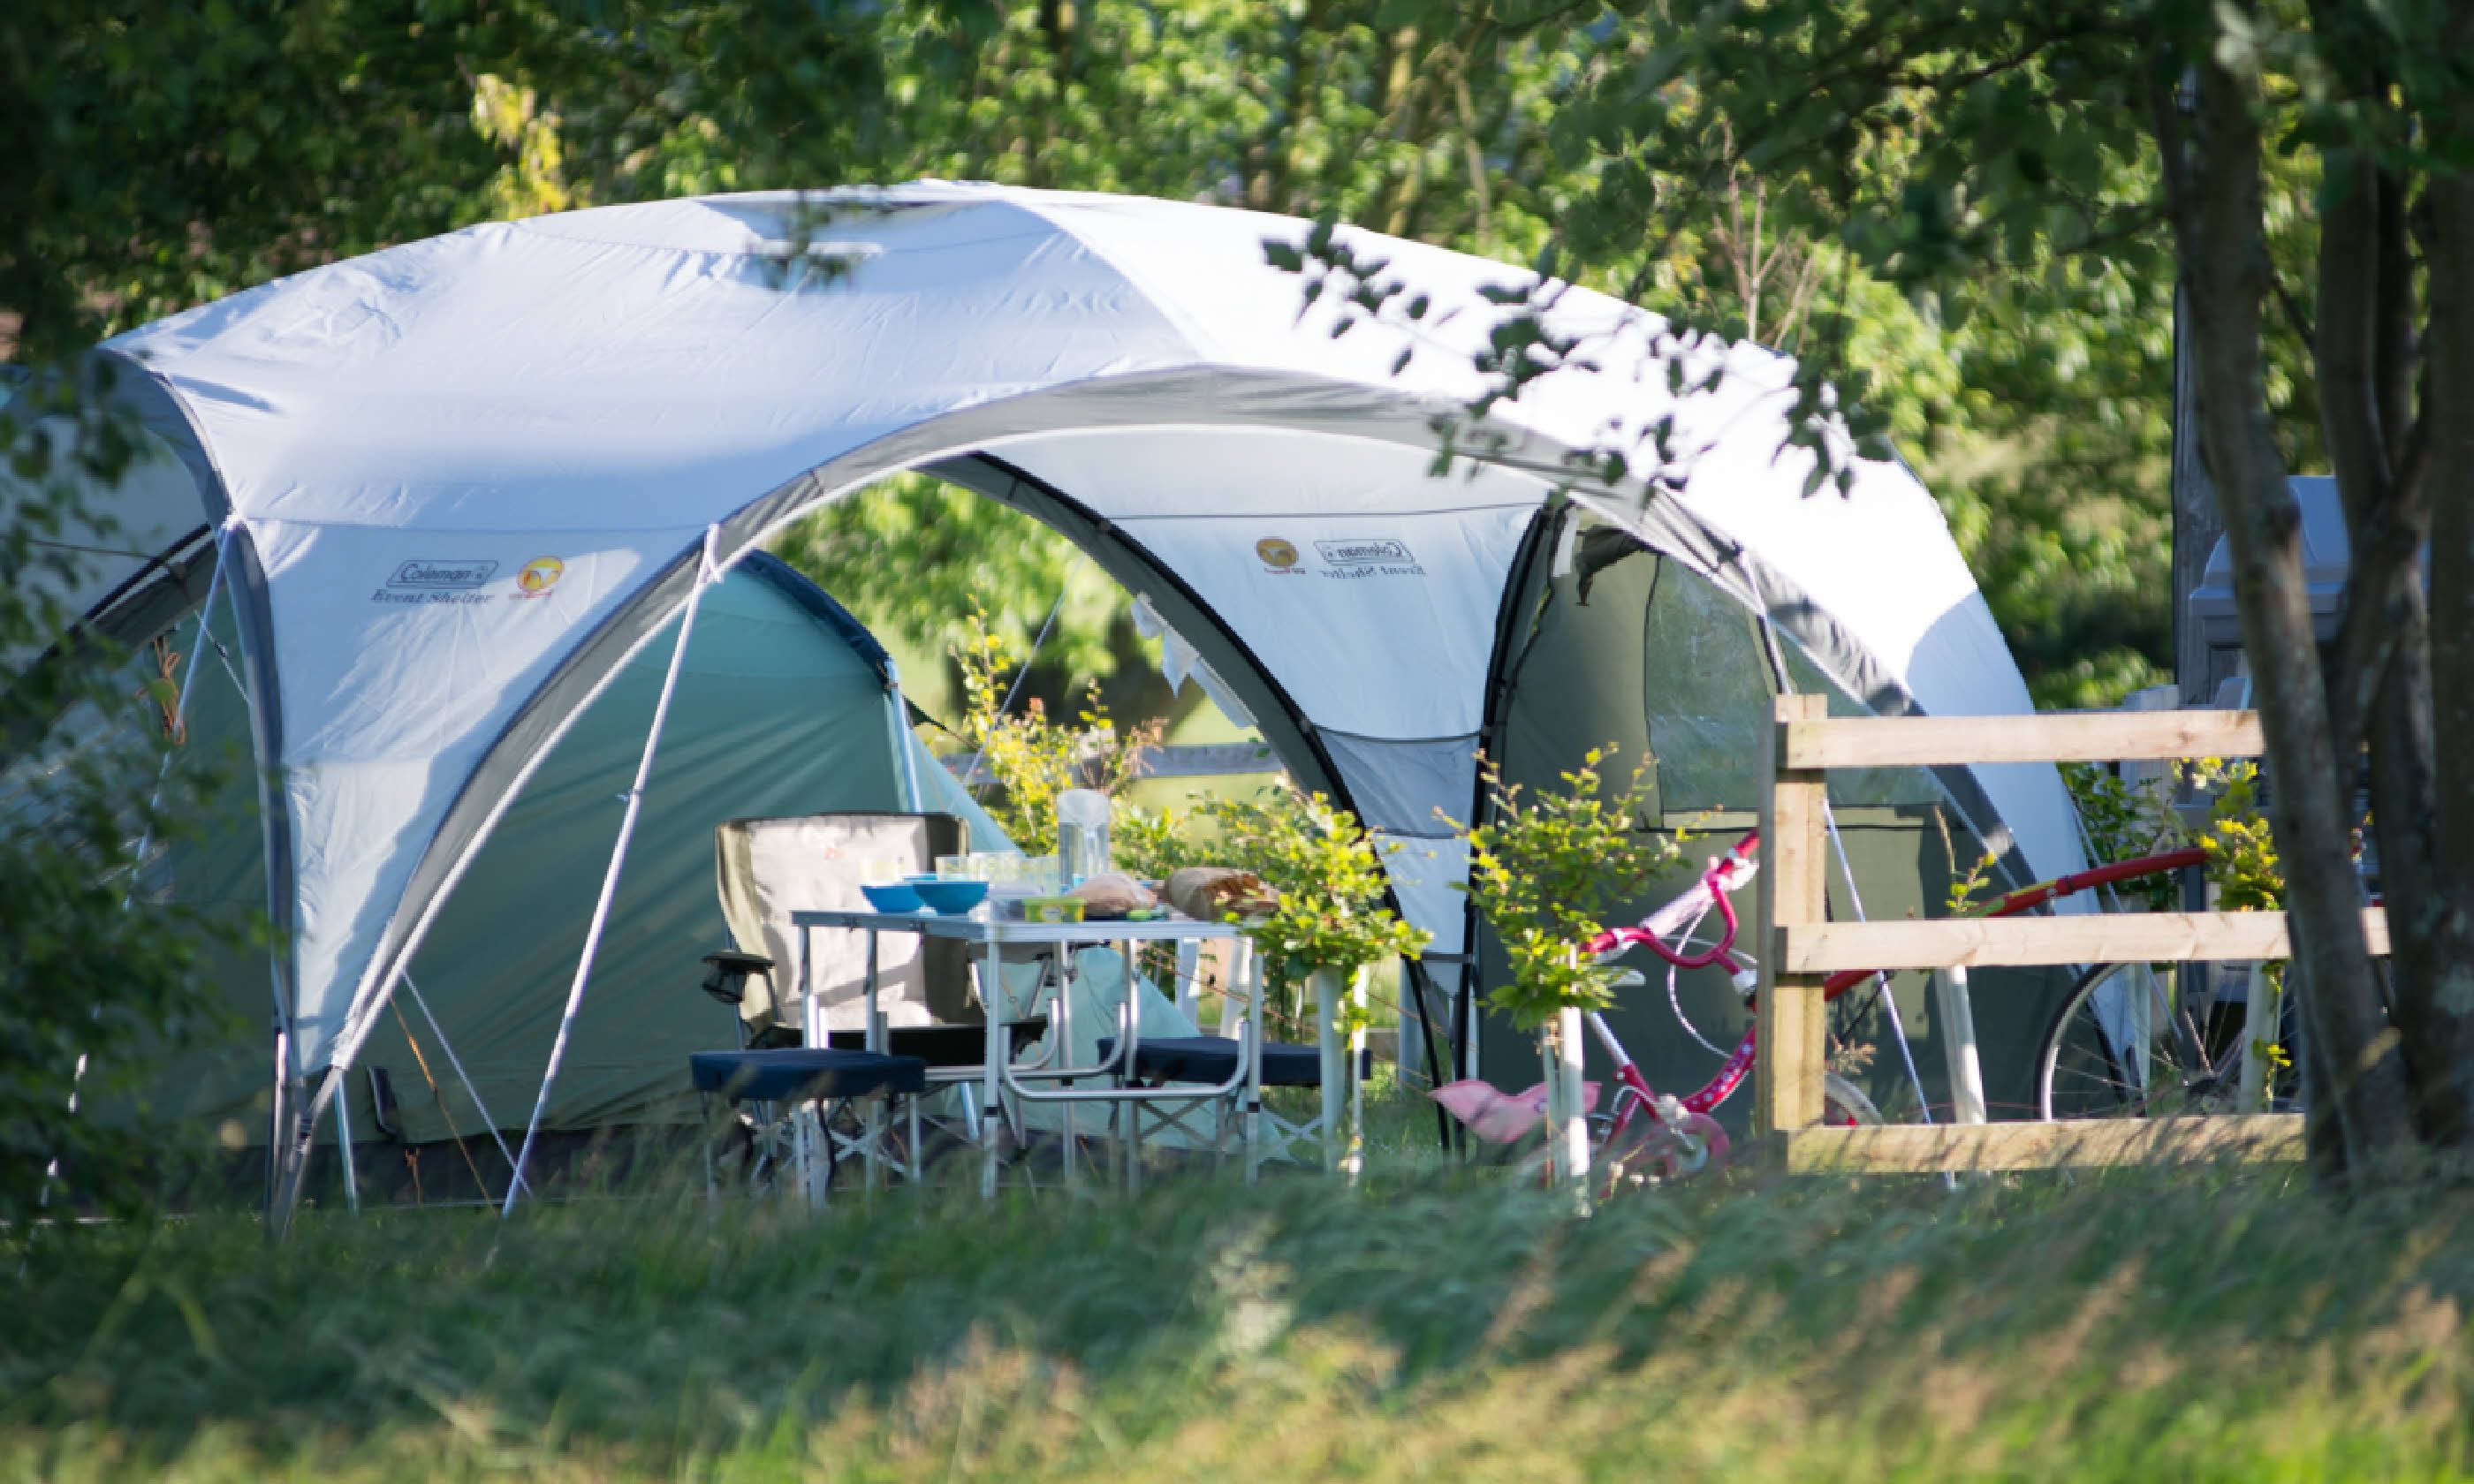 Whatu0027s allowed Tents touring caravans motorhomes u2013 all welcome. Cyclists or guests arriving on foot and/or by public transport do not pay a pitch fee. & Top 10 cool campsites in England and the Isle of Wight | Wanderlust